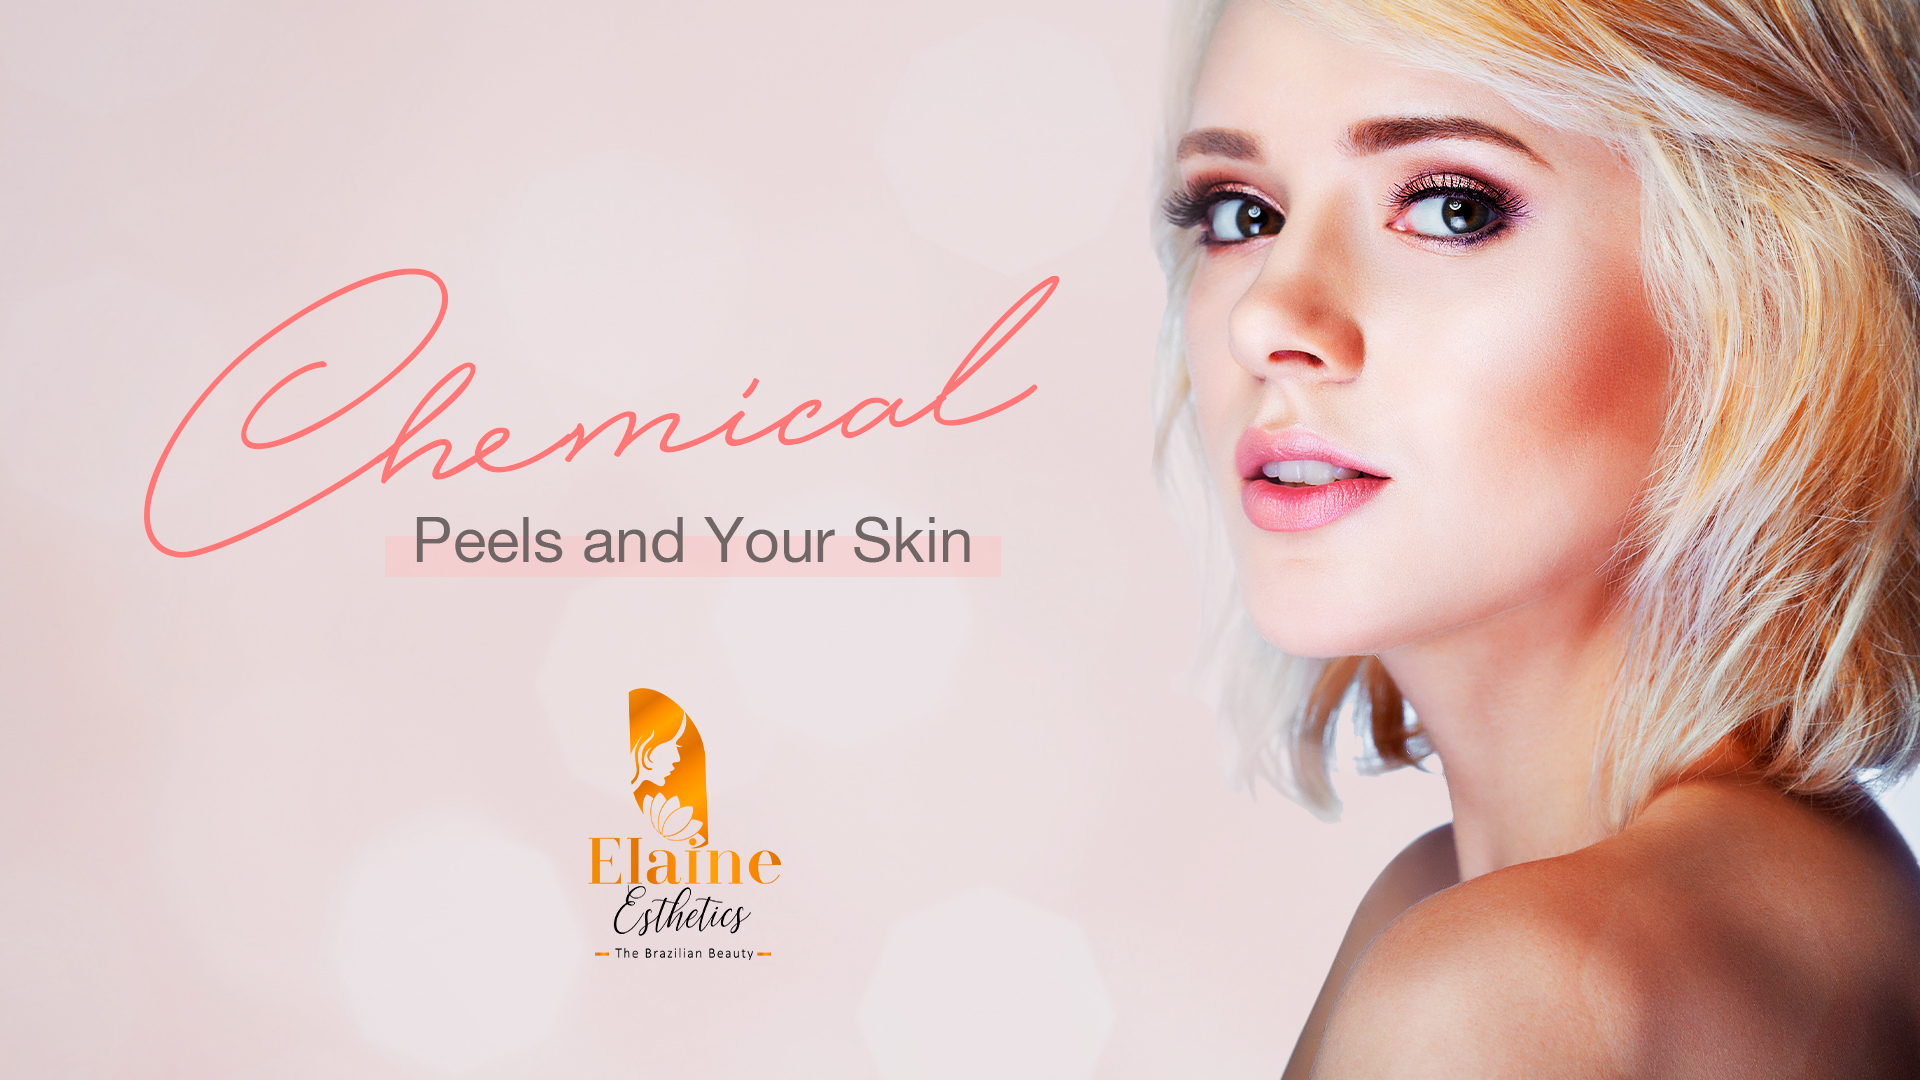 """Chemical peels can improve the skin's appearance. In this treatment, a chemical solution is applied to the skin, which makes it ""blister"" and eventually peel off. The new skin is usually smoother and less wrinkled than the old skin..."""